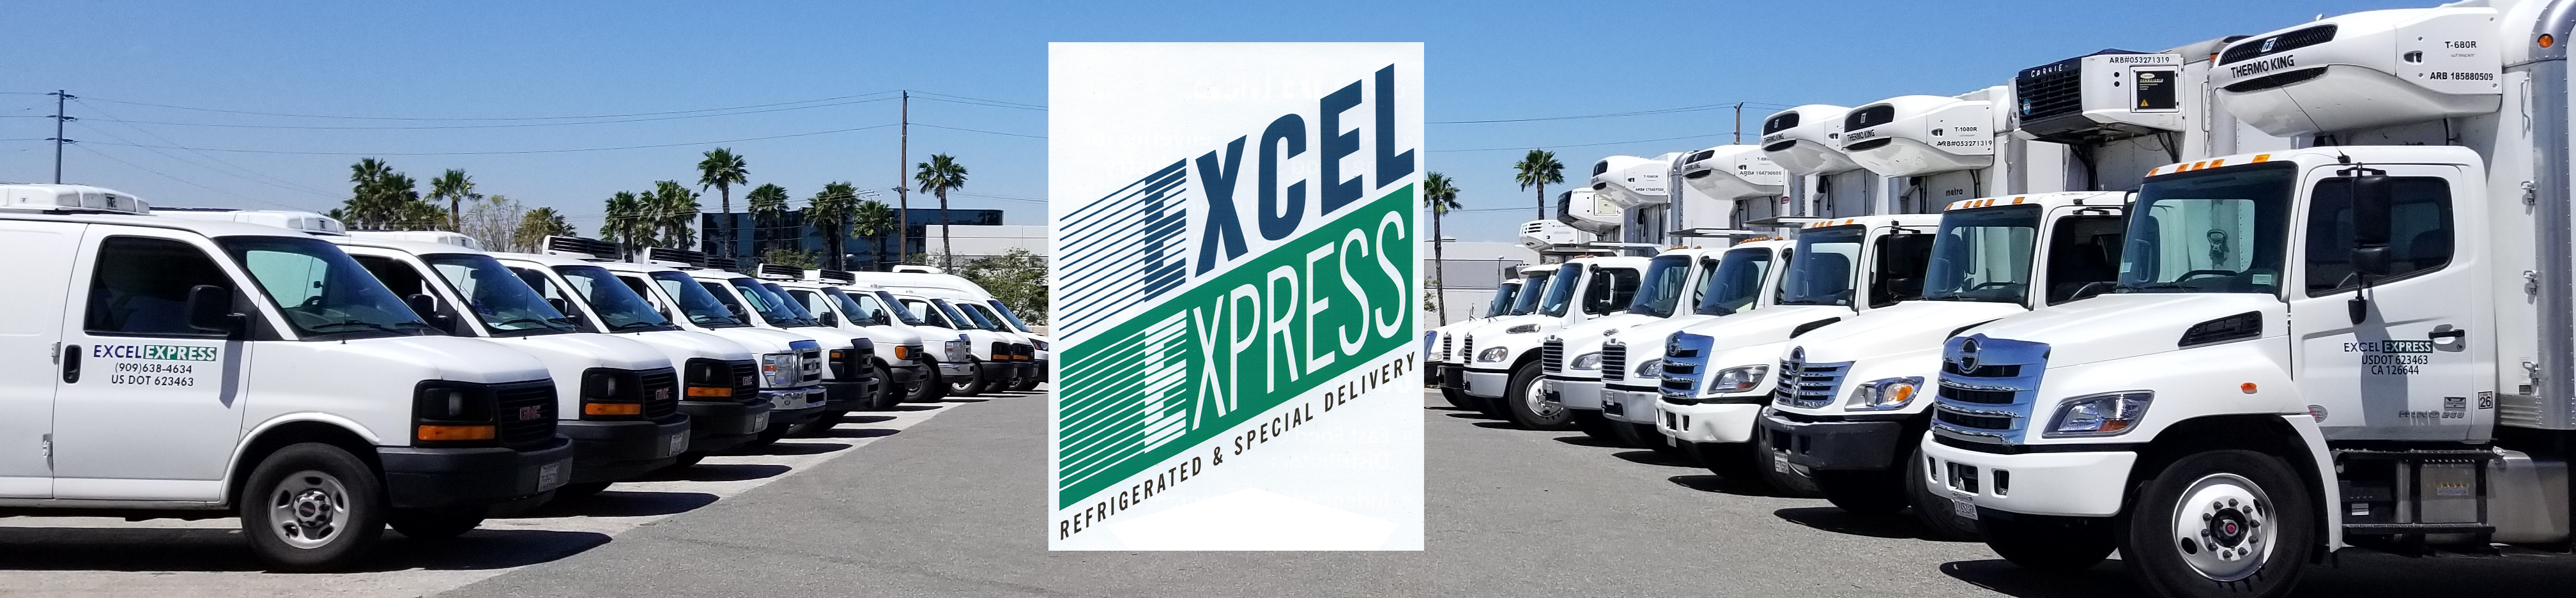 Excel Express